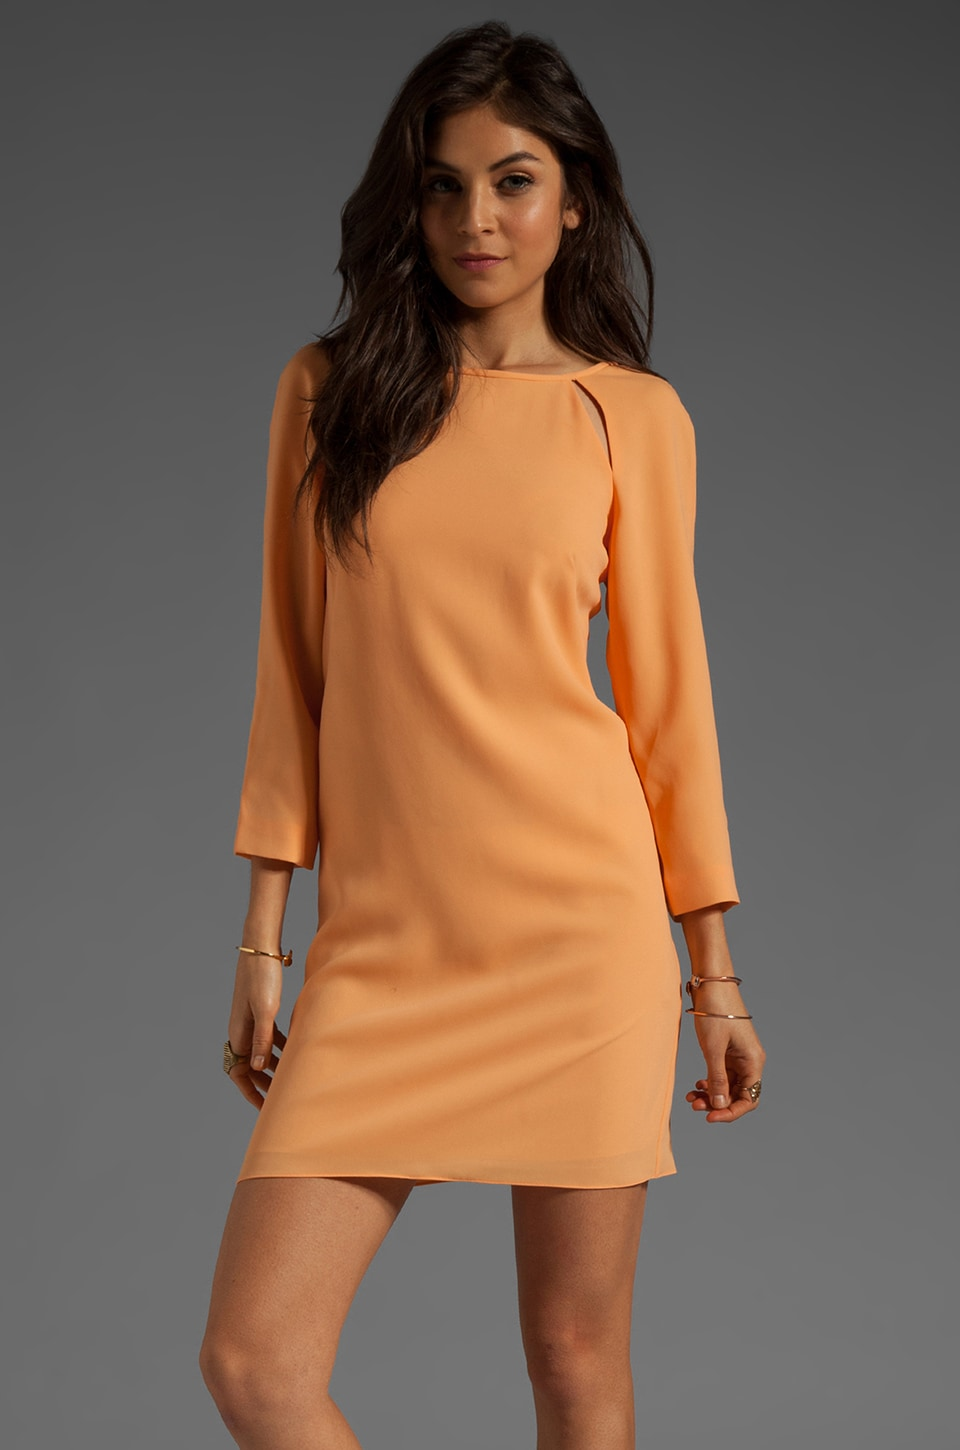 Tibi Peekaboo Shift Dress in Peach